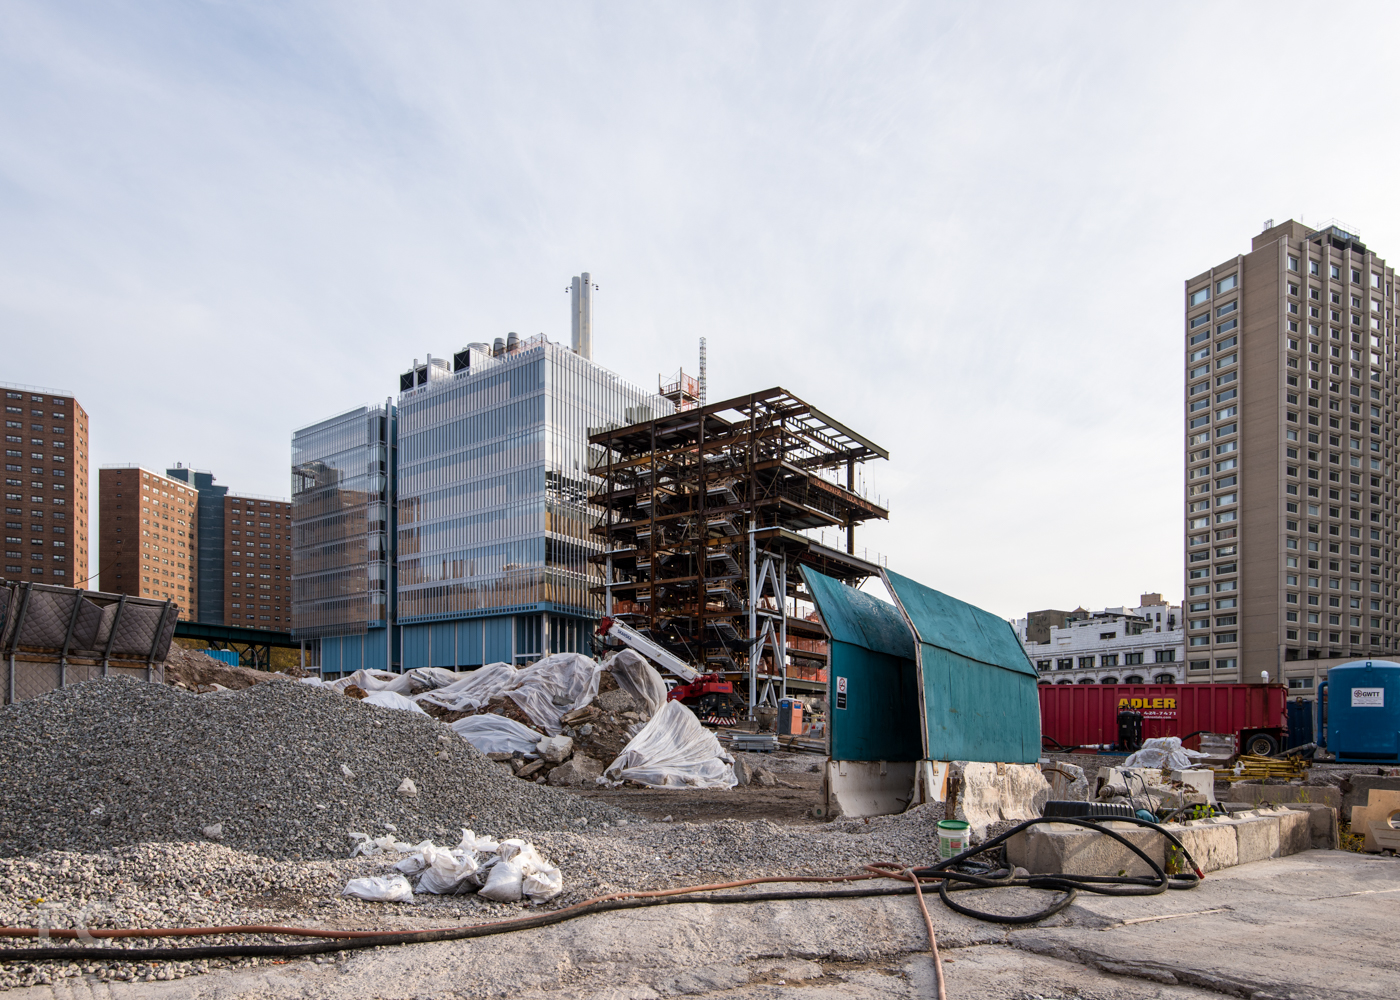 Northwest corner  of the Science Center (left) and Center for the Arts (right) from West 131st Street.